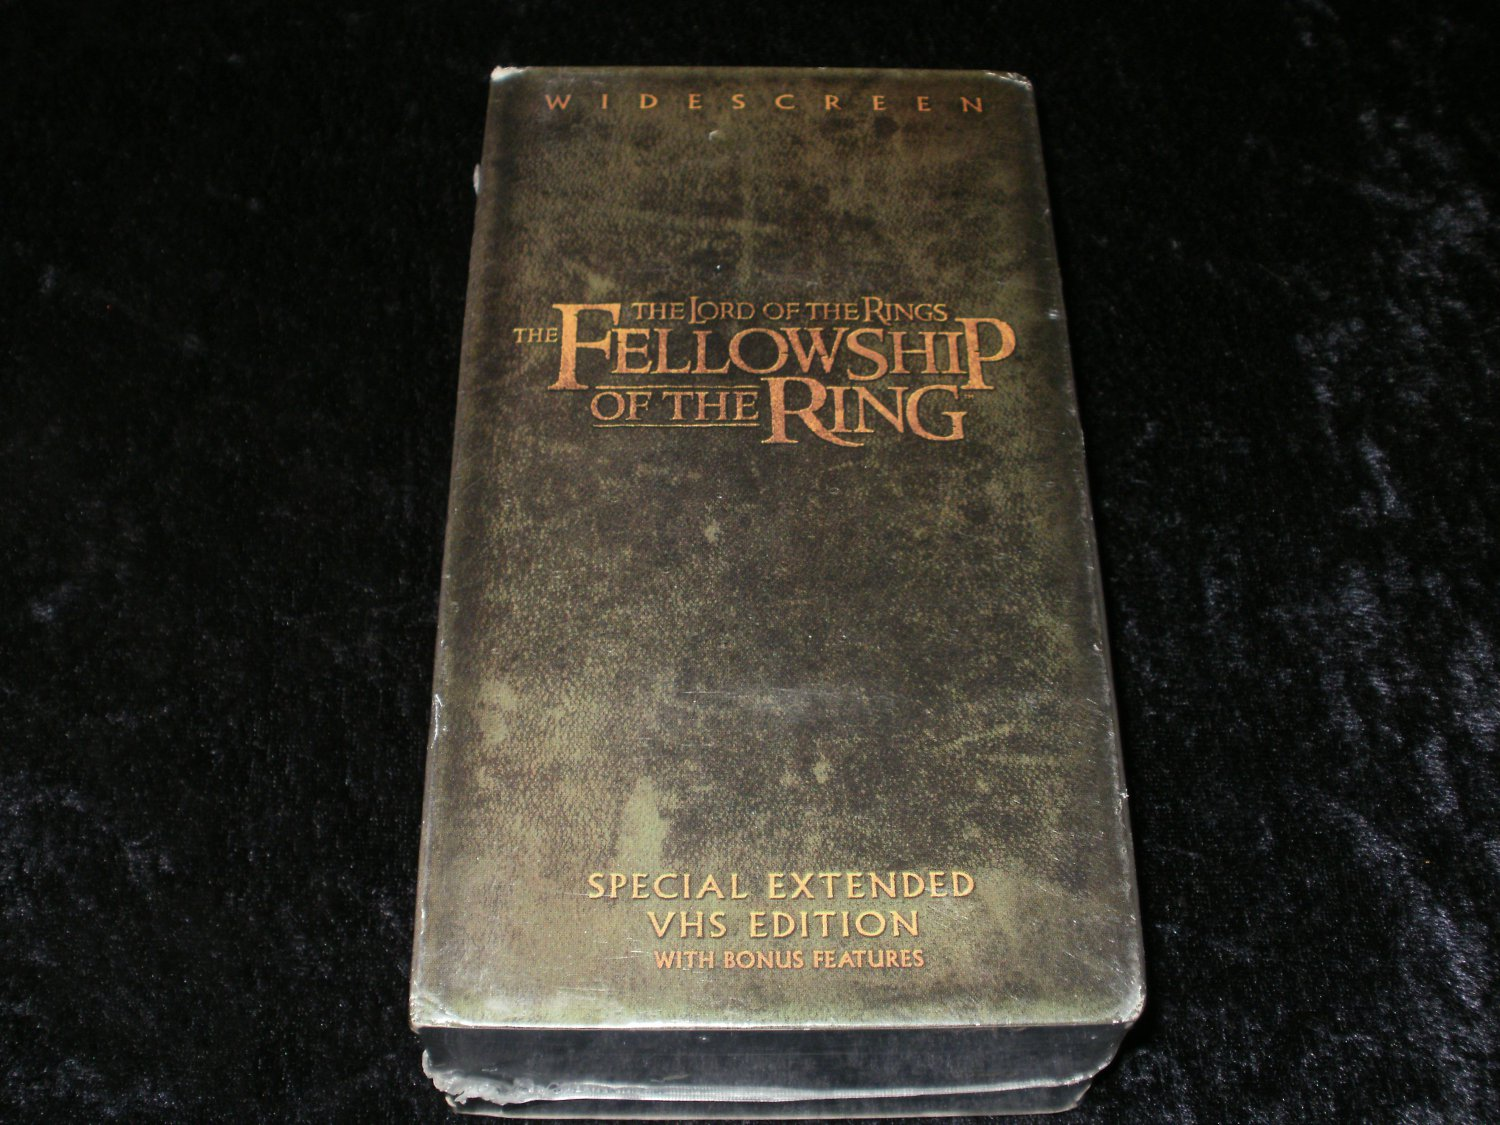 The Lord of Rings Fellowship of Ring (Special Extended Edition) - VHS - 2 Tape Set - Brand New